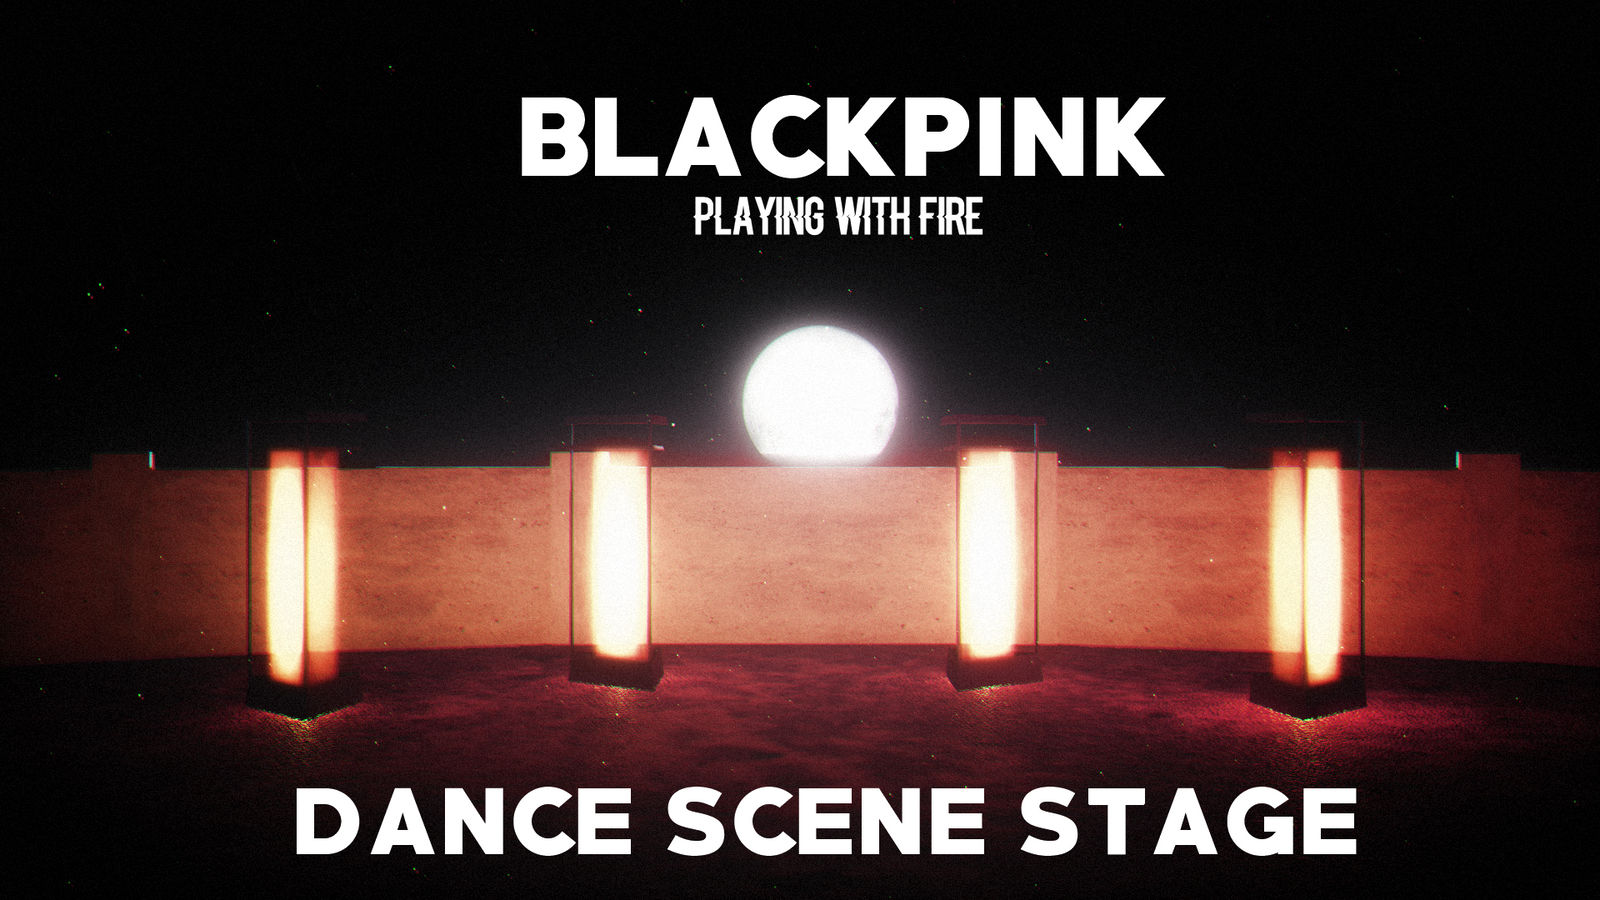 MMD]BLACKPINK - PLAYING WITH FIRE(DANCE STAGE DL) by